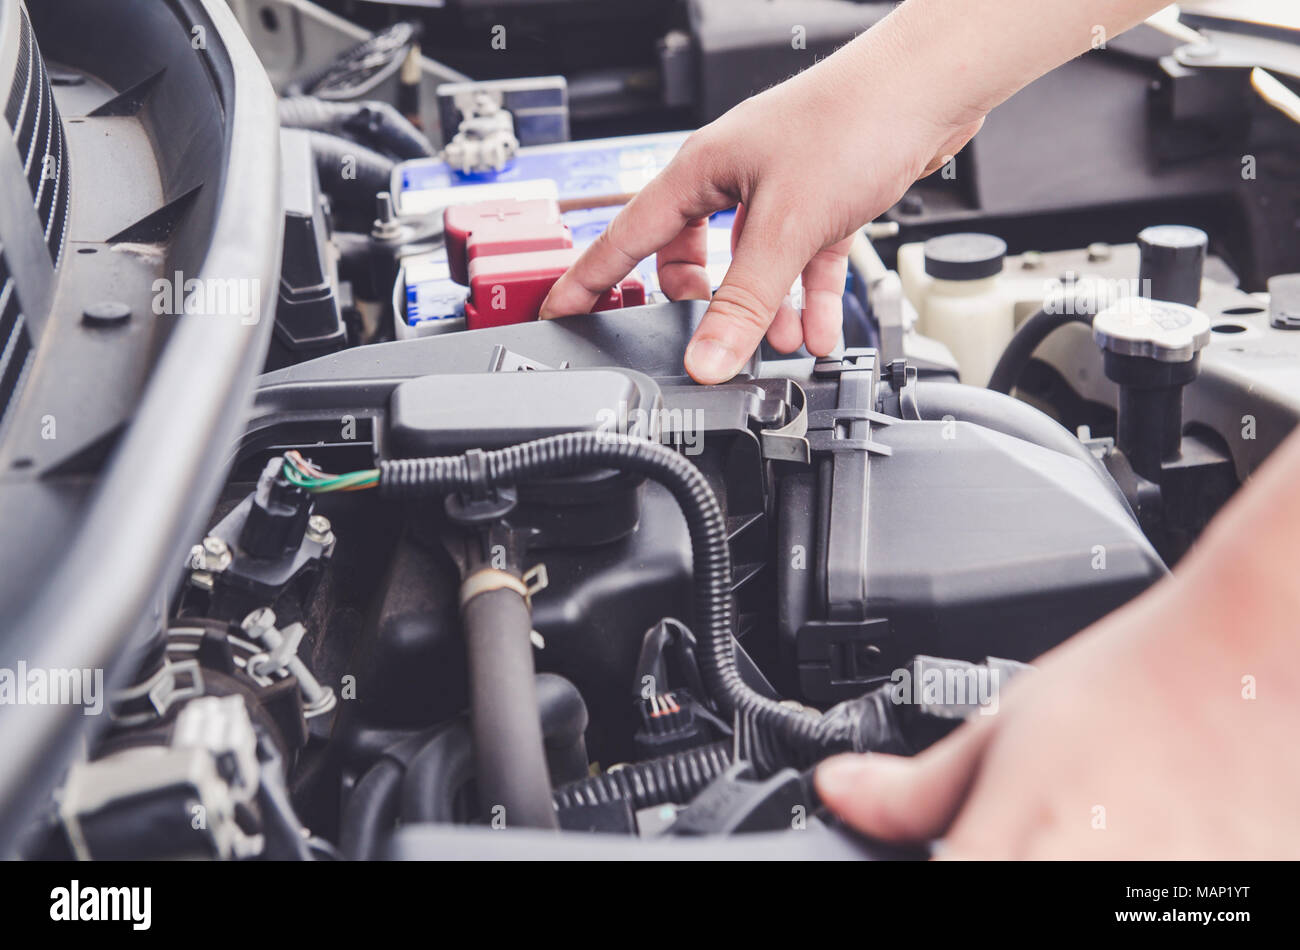 Car Repair And Maintenance >> Check The Condition Of The Car Engine Repair Or Maintenance Concept